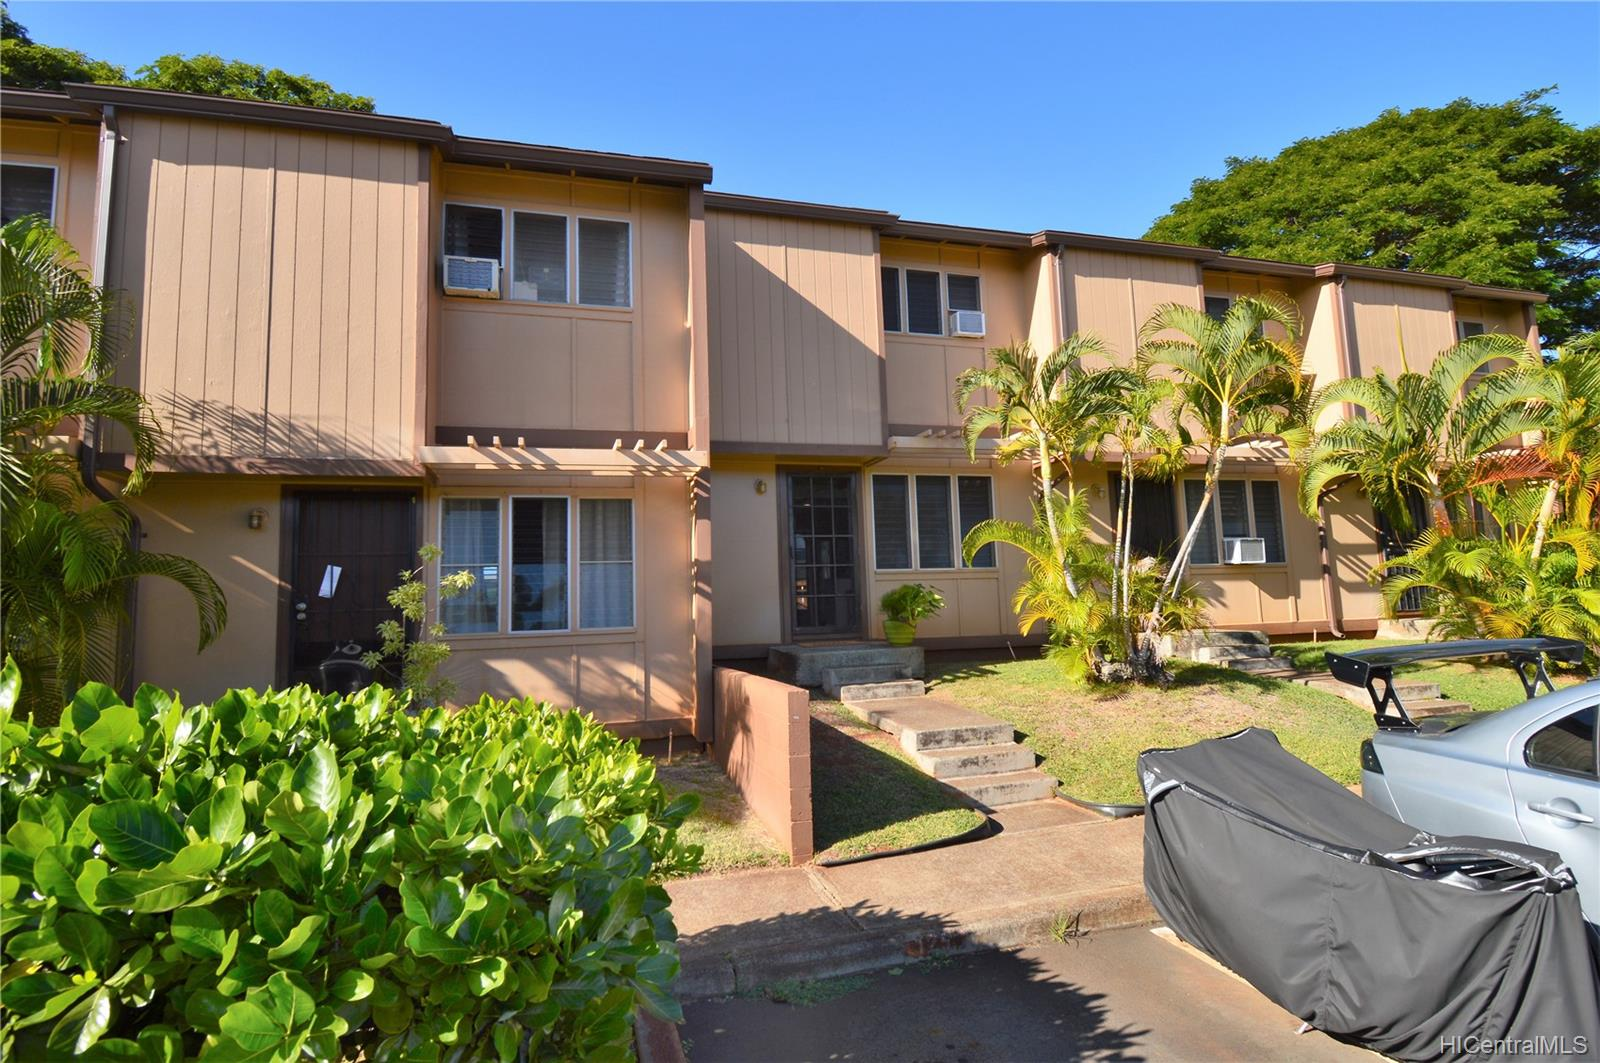 98-1397 Hinu Place townhouse # D, Pearl City, Hawaii - photo 22 of 25